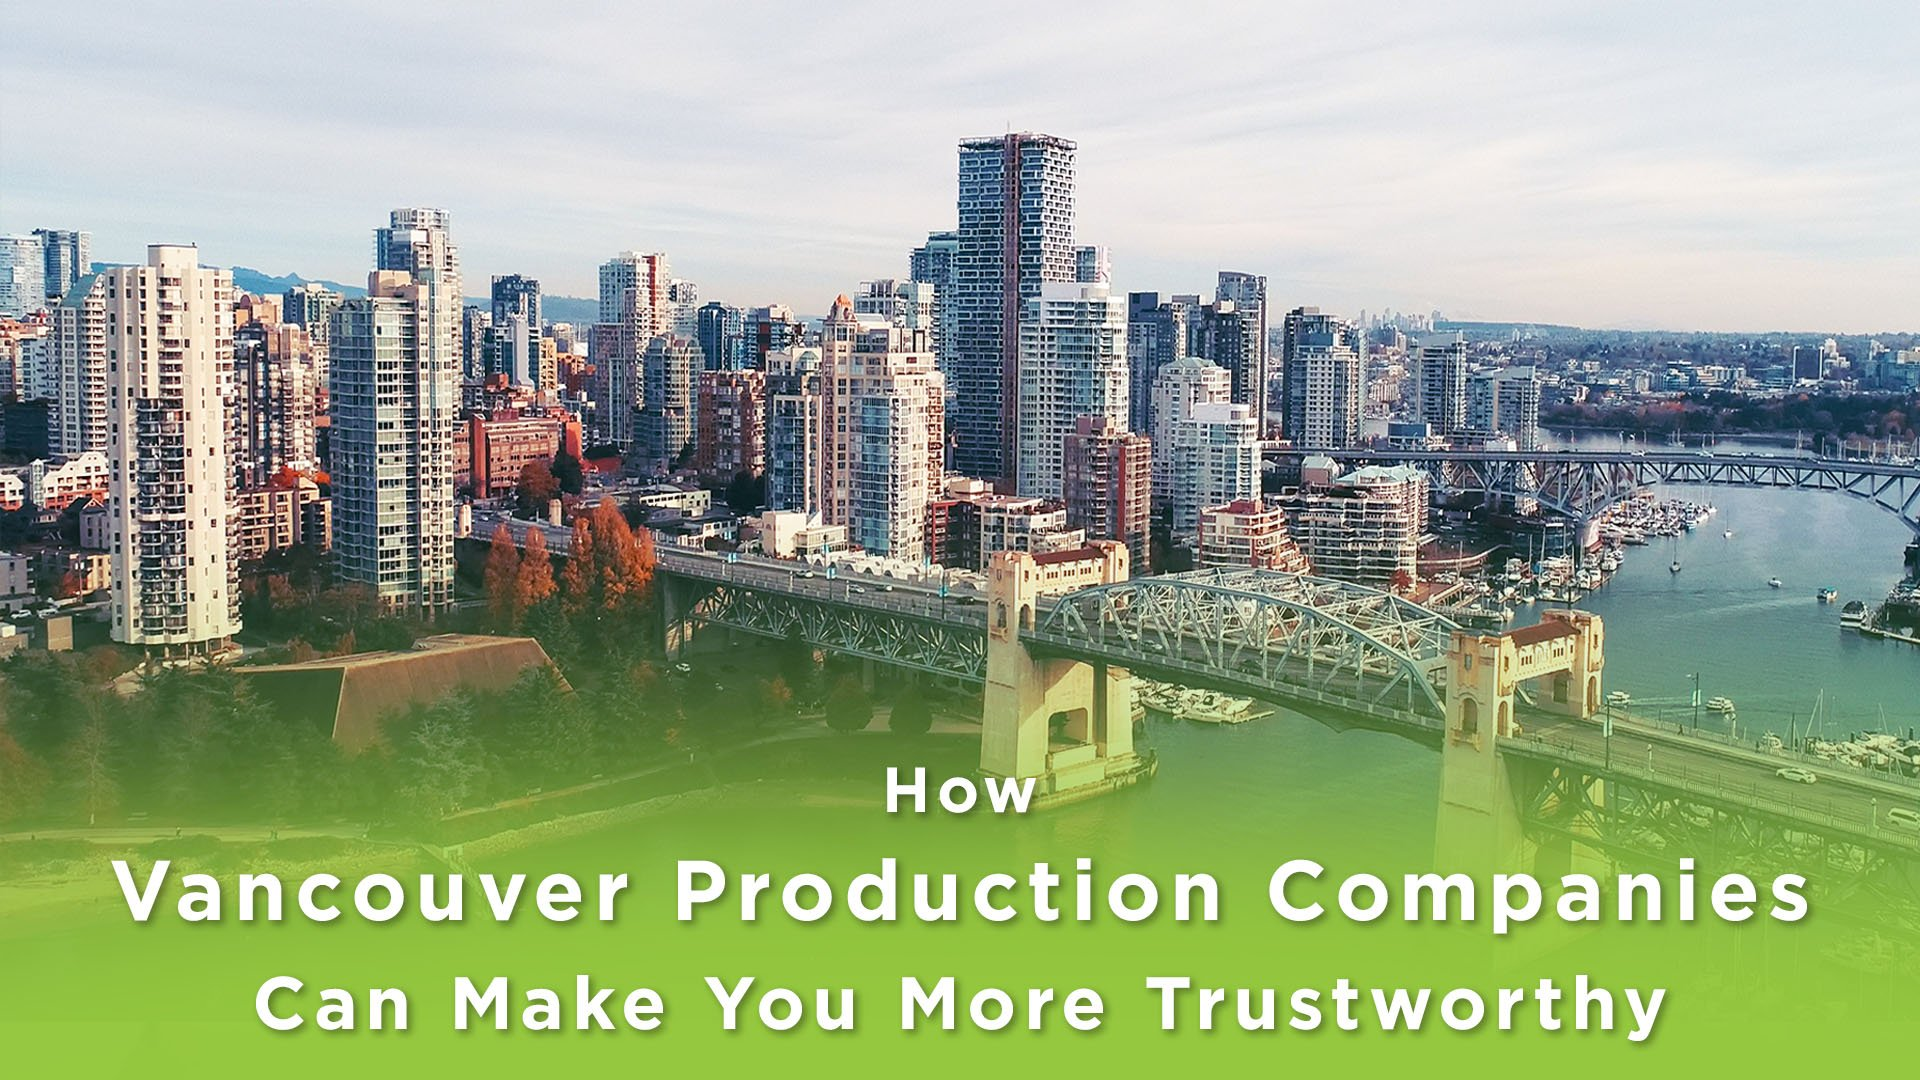 Skyline image of Vancouver with text: Vancouver Production Companies